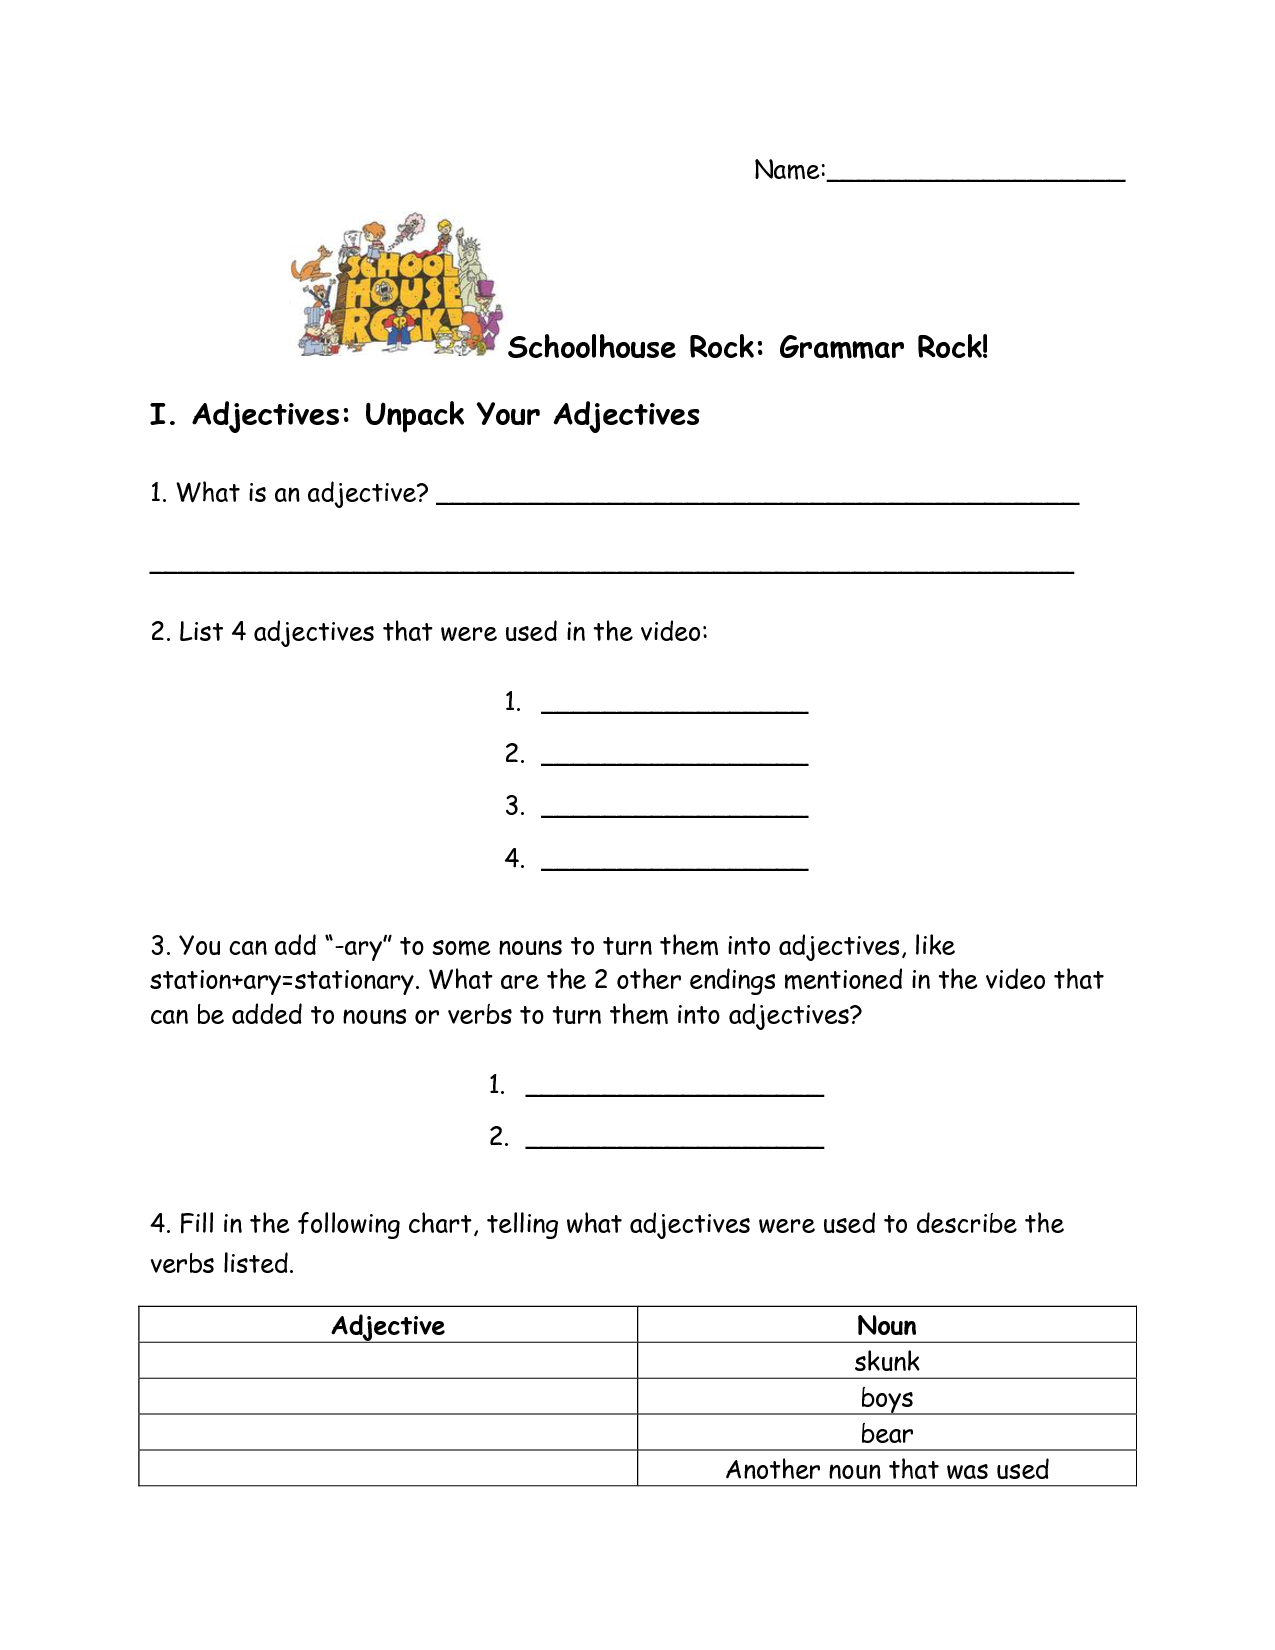 School house rock worksheet school house rock pinterest school school house rock worksheet fandeluxe Image collections